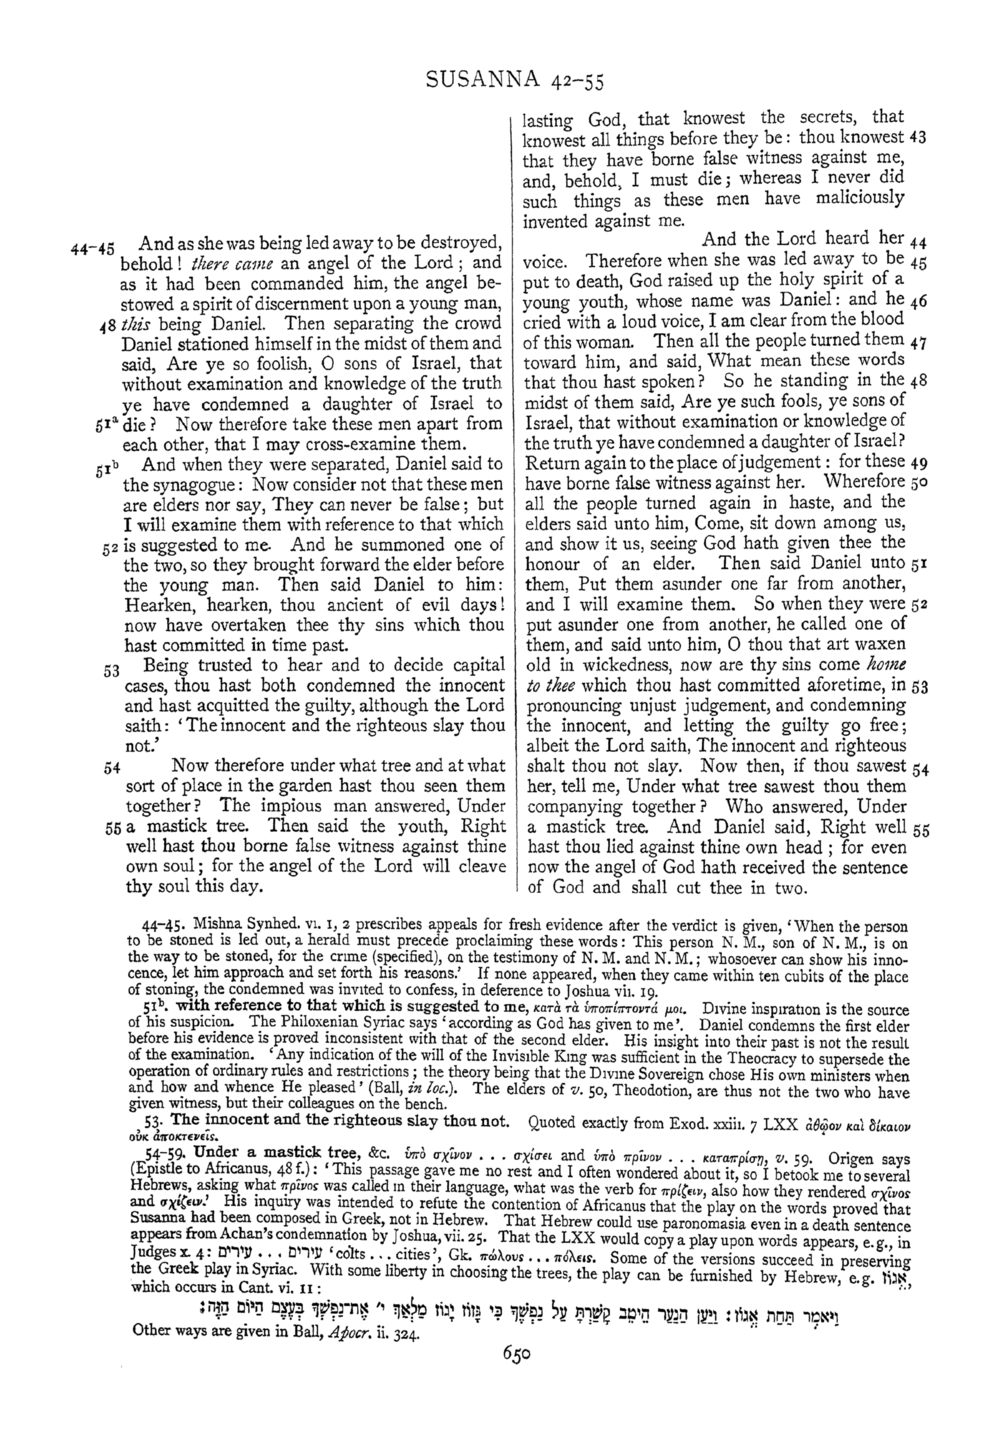 Image of page 650